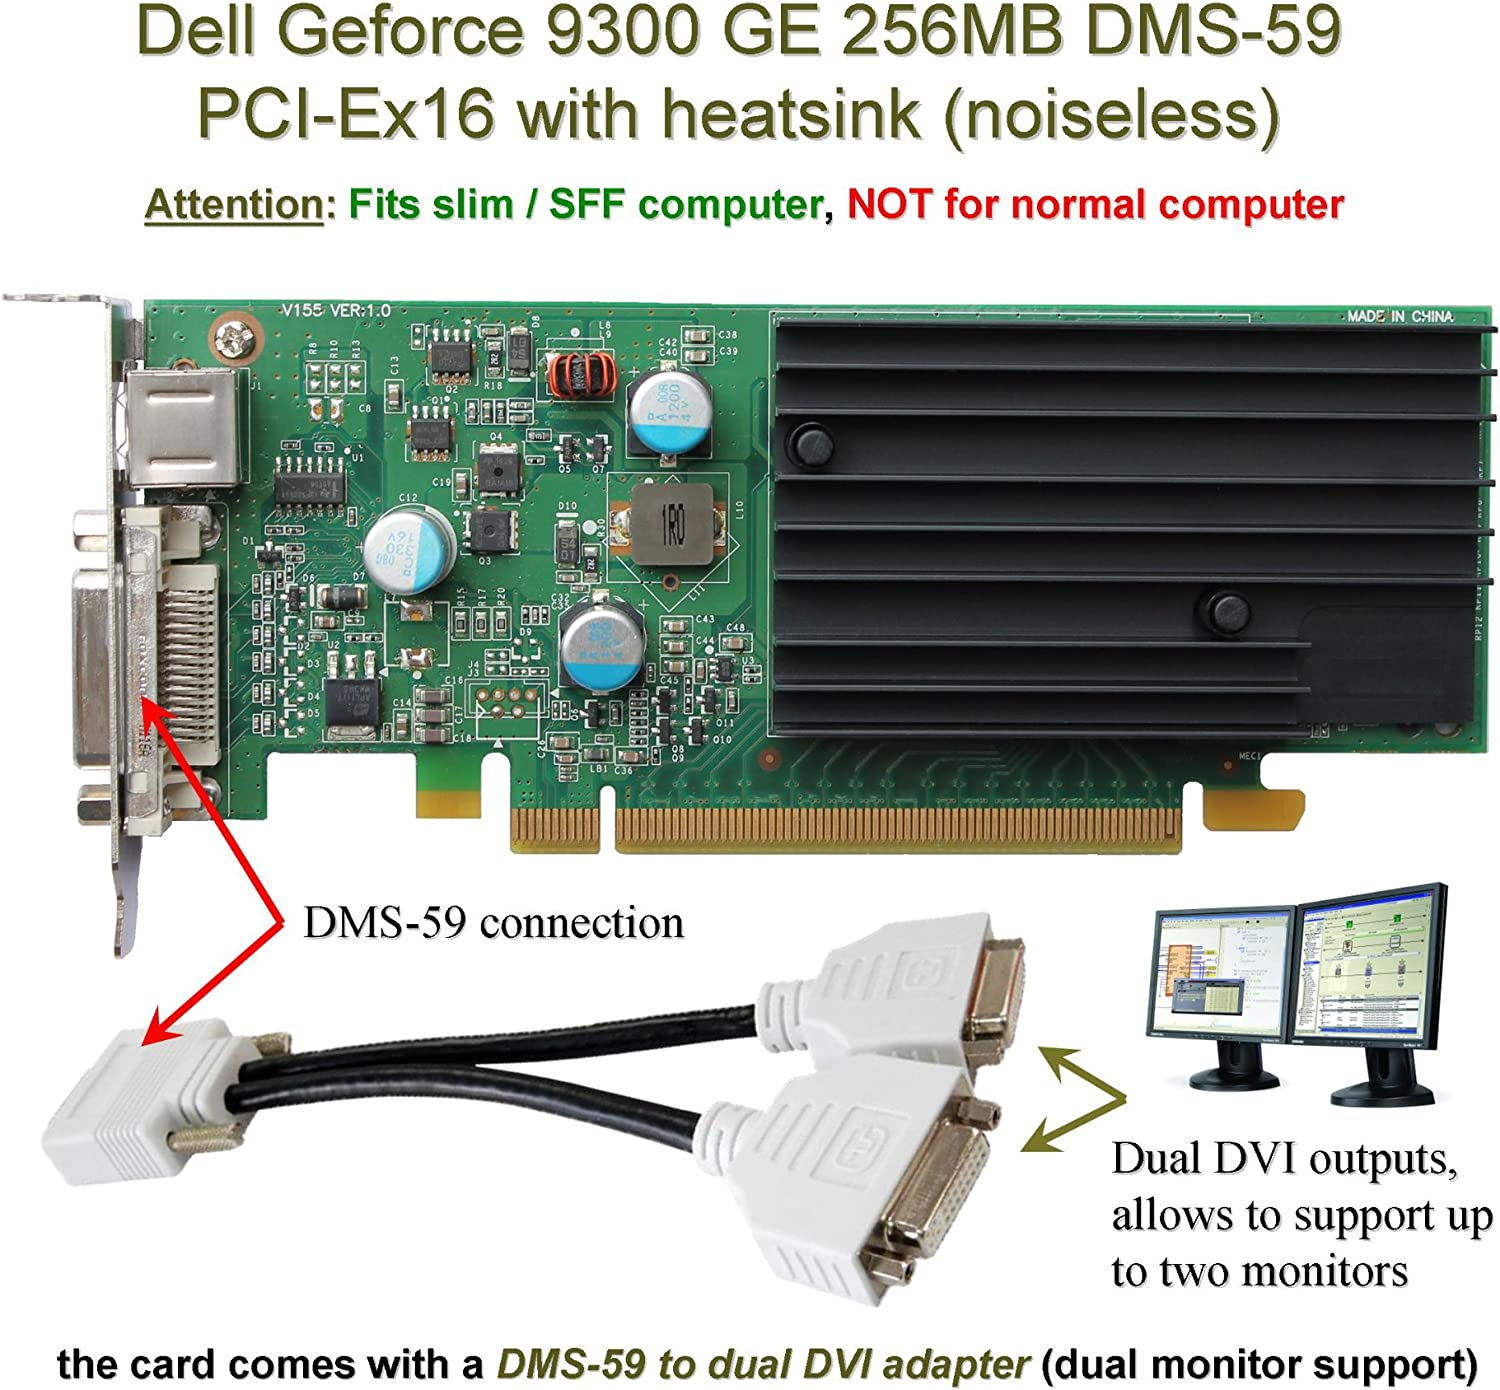 Dell GeForce 9300 GE 256 MB Graphic Card with DMS-59 Port